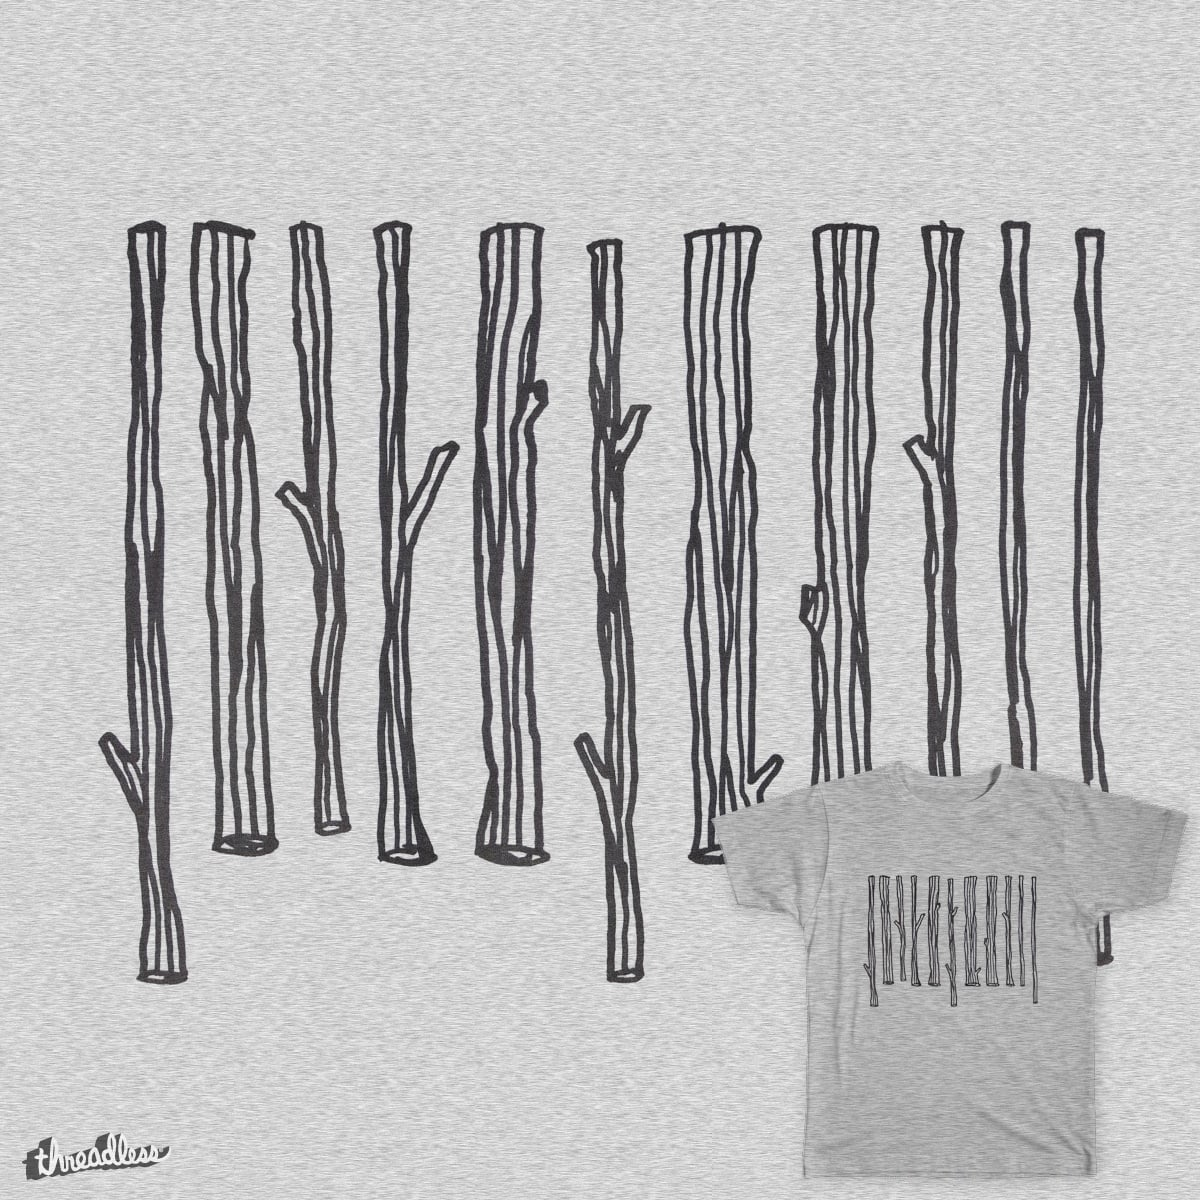 Barkcode by AndreasWikstrom on Threadless